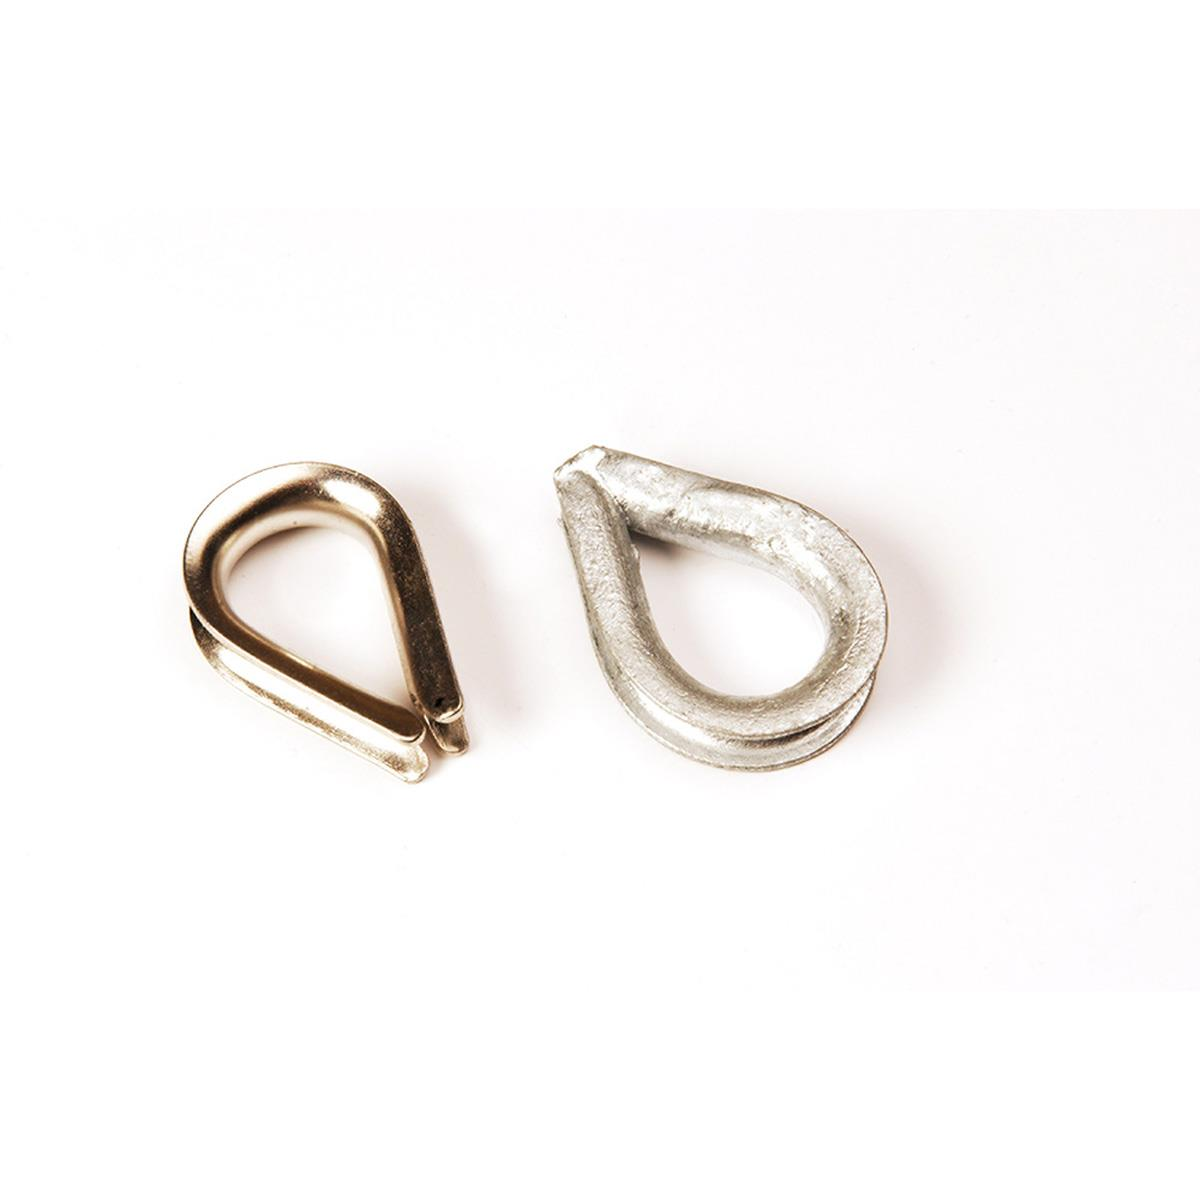 8mm Stainless Steel Rope Thimble